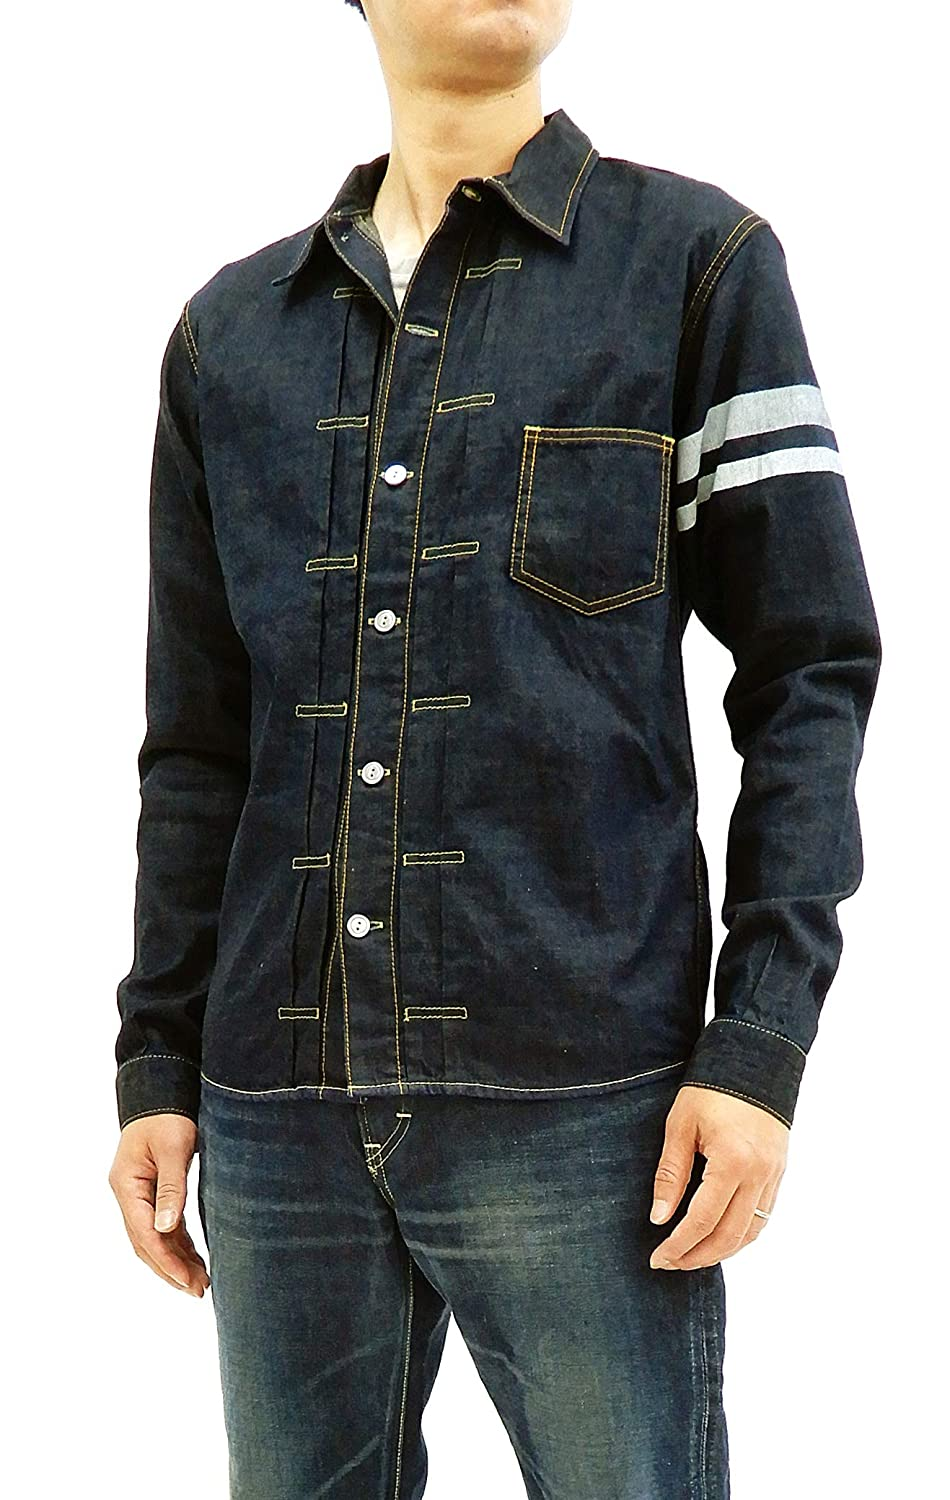 2373c8d7b4b Momotaro Jeans 05-197 Men s Slim fit Indigo Denim Shirt Long Sleeve type1  GTB Japan 42 (US L UK 40) at Amazon Men s Clothing store